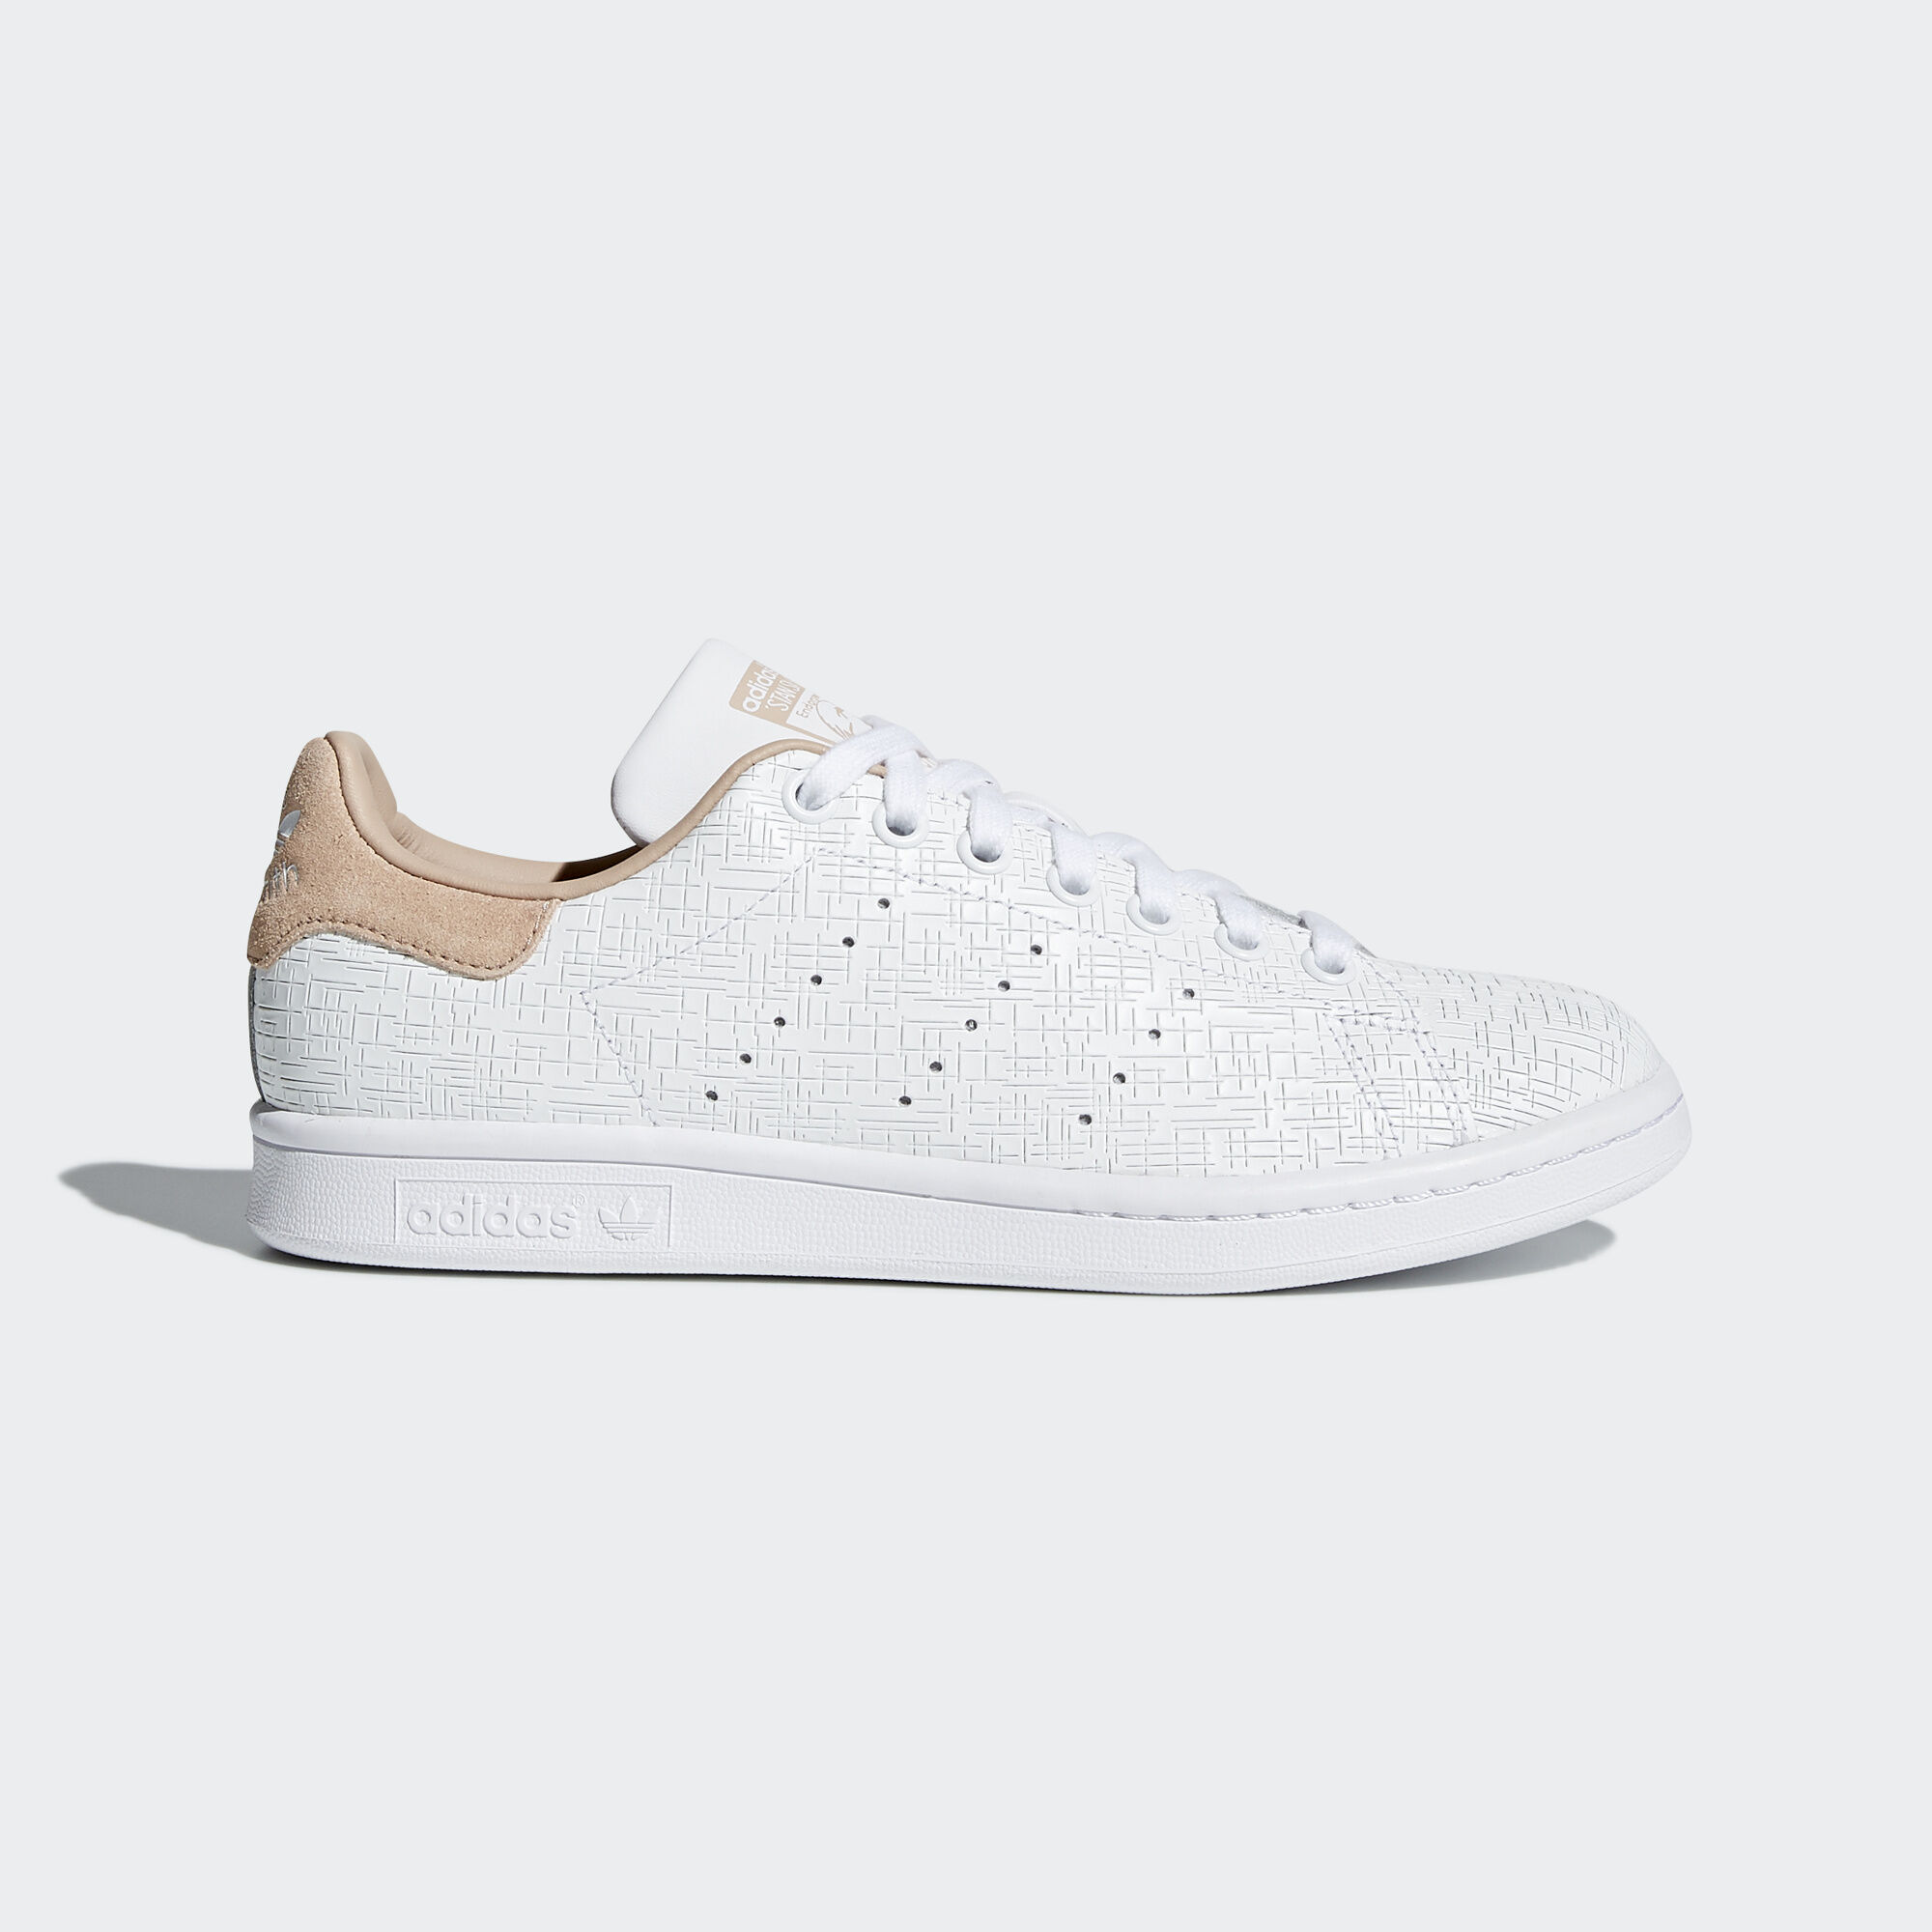 adidas stan smith shoes white adidas europe africa. Black Bedroom Furniture Sets. Home Design Ideas